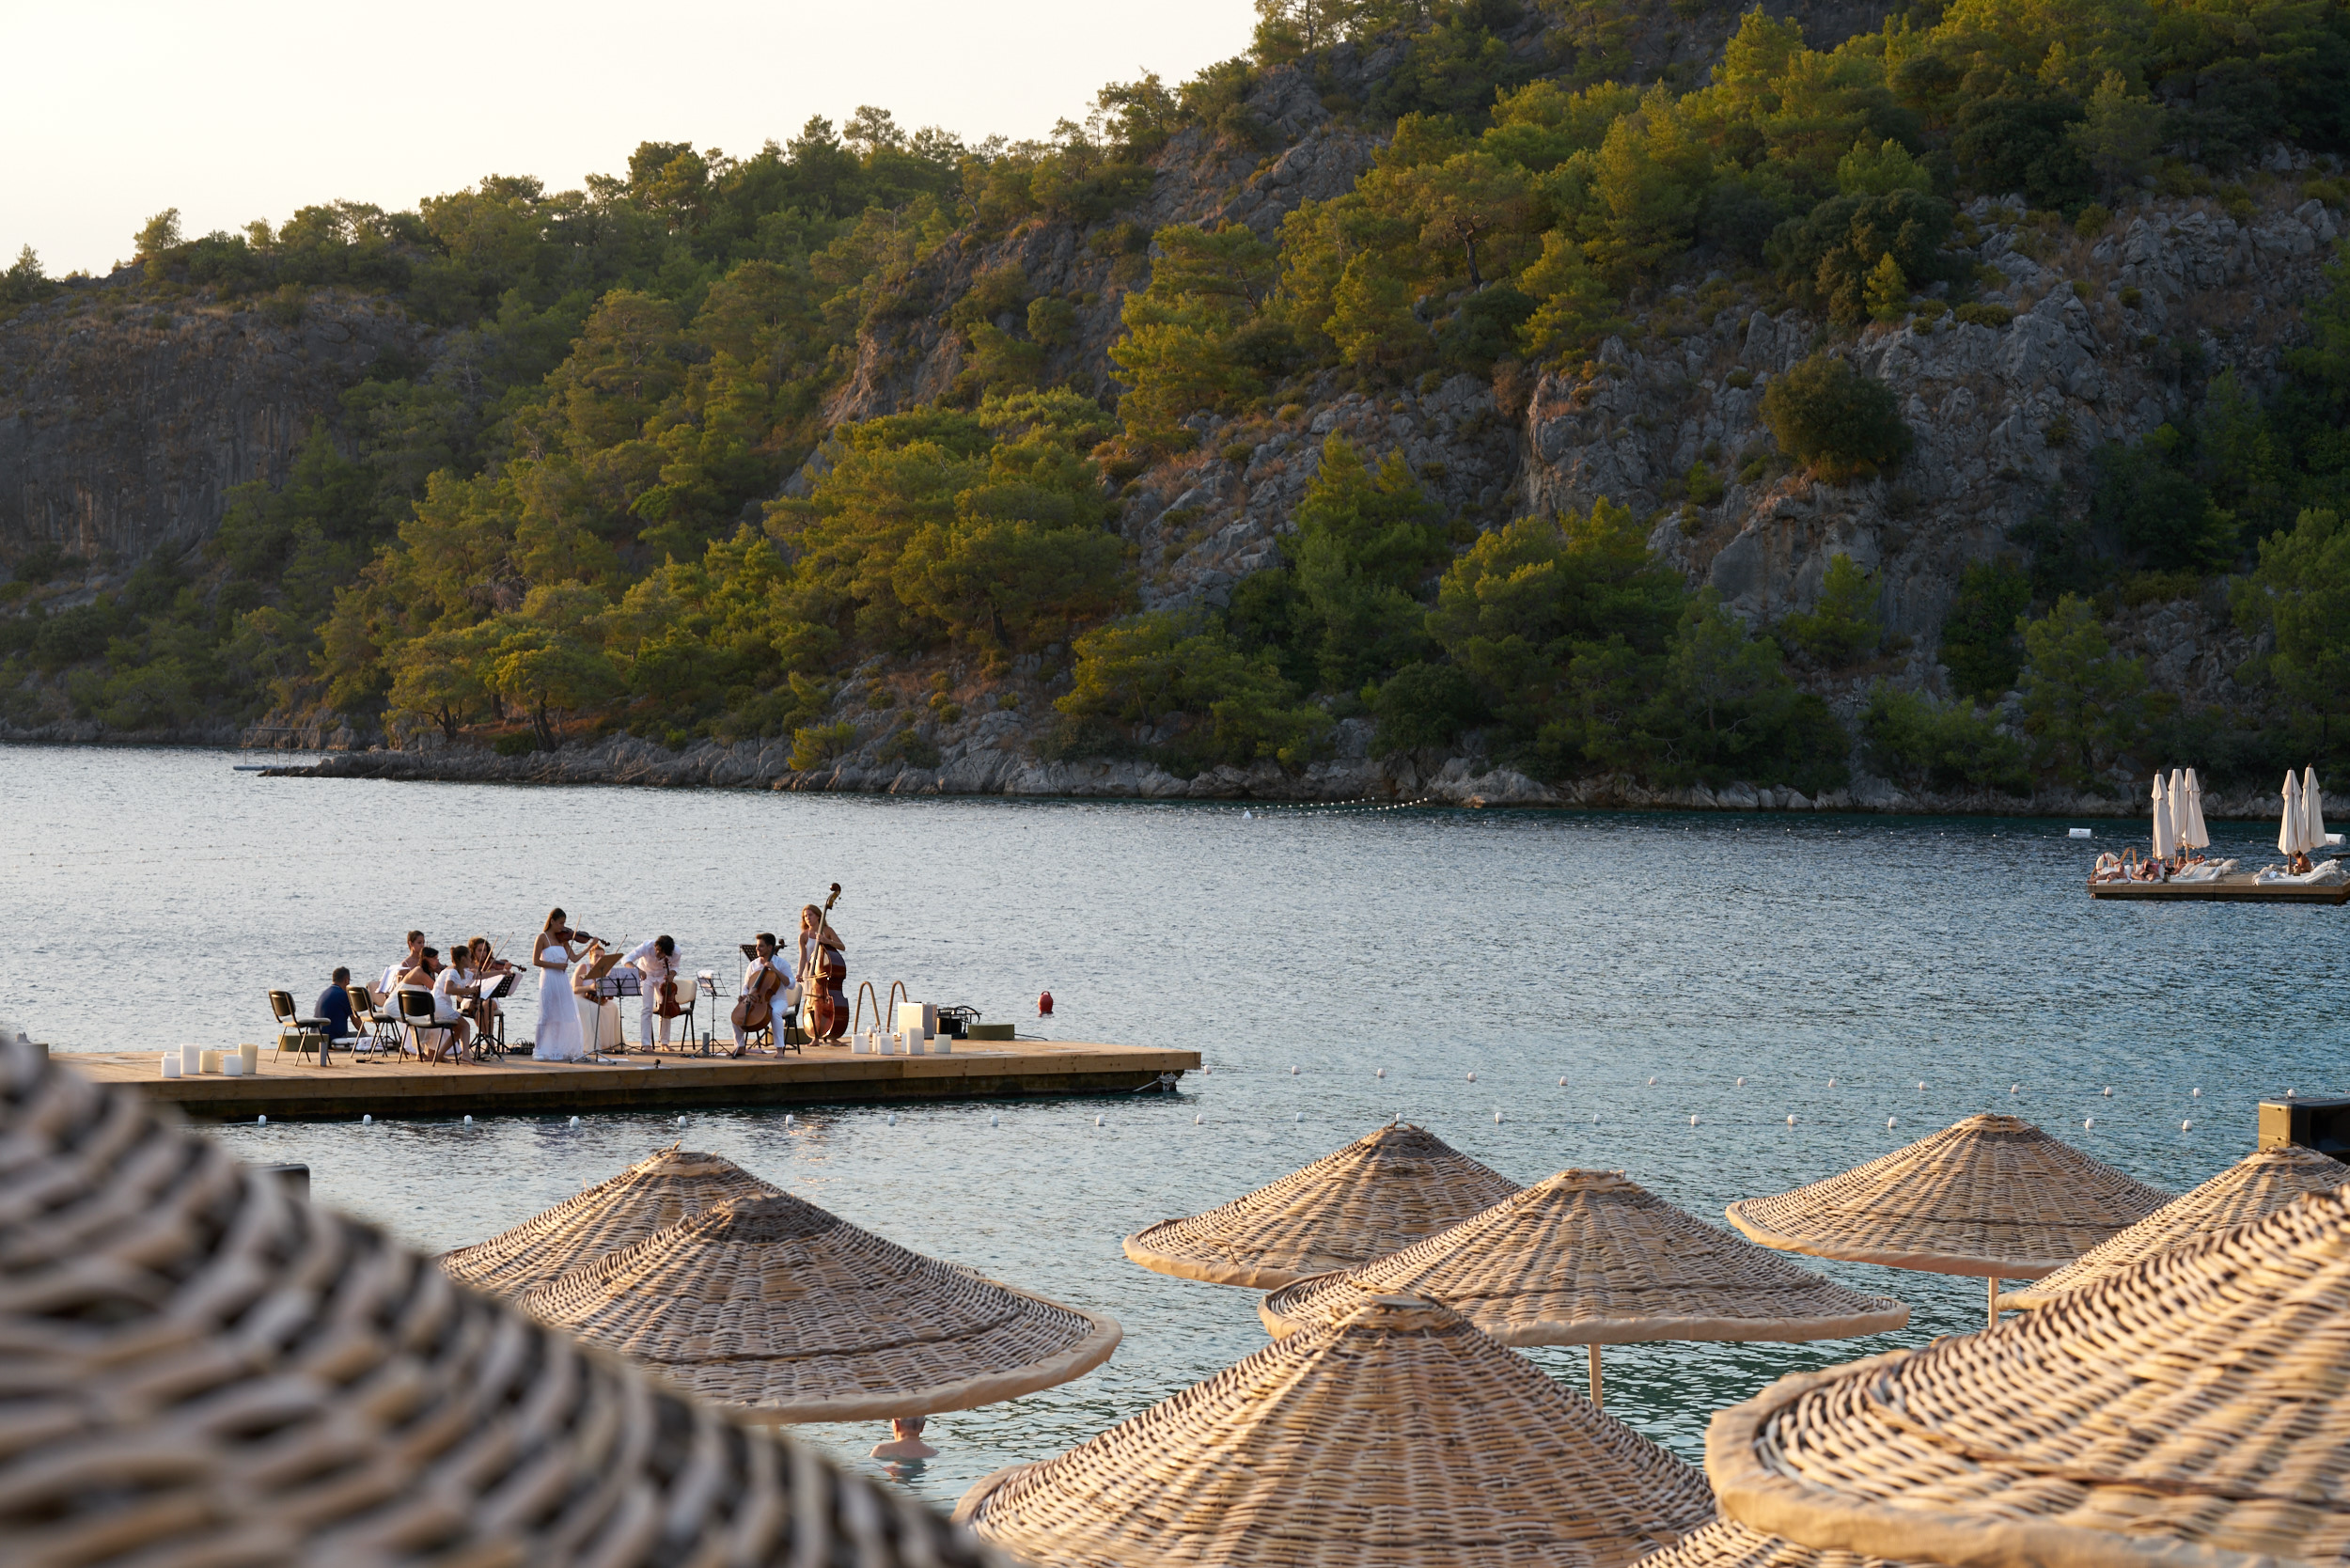 billur saatci, offnegiysem, street style, turkish style blogger, hillside beach club, sunset, ankara oda orkestrası,